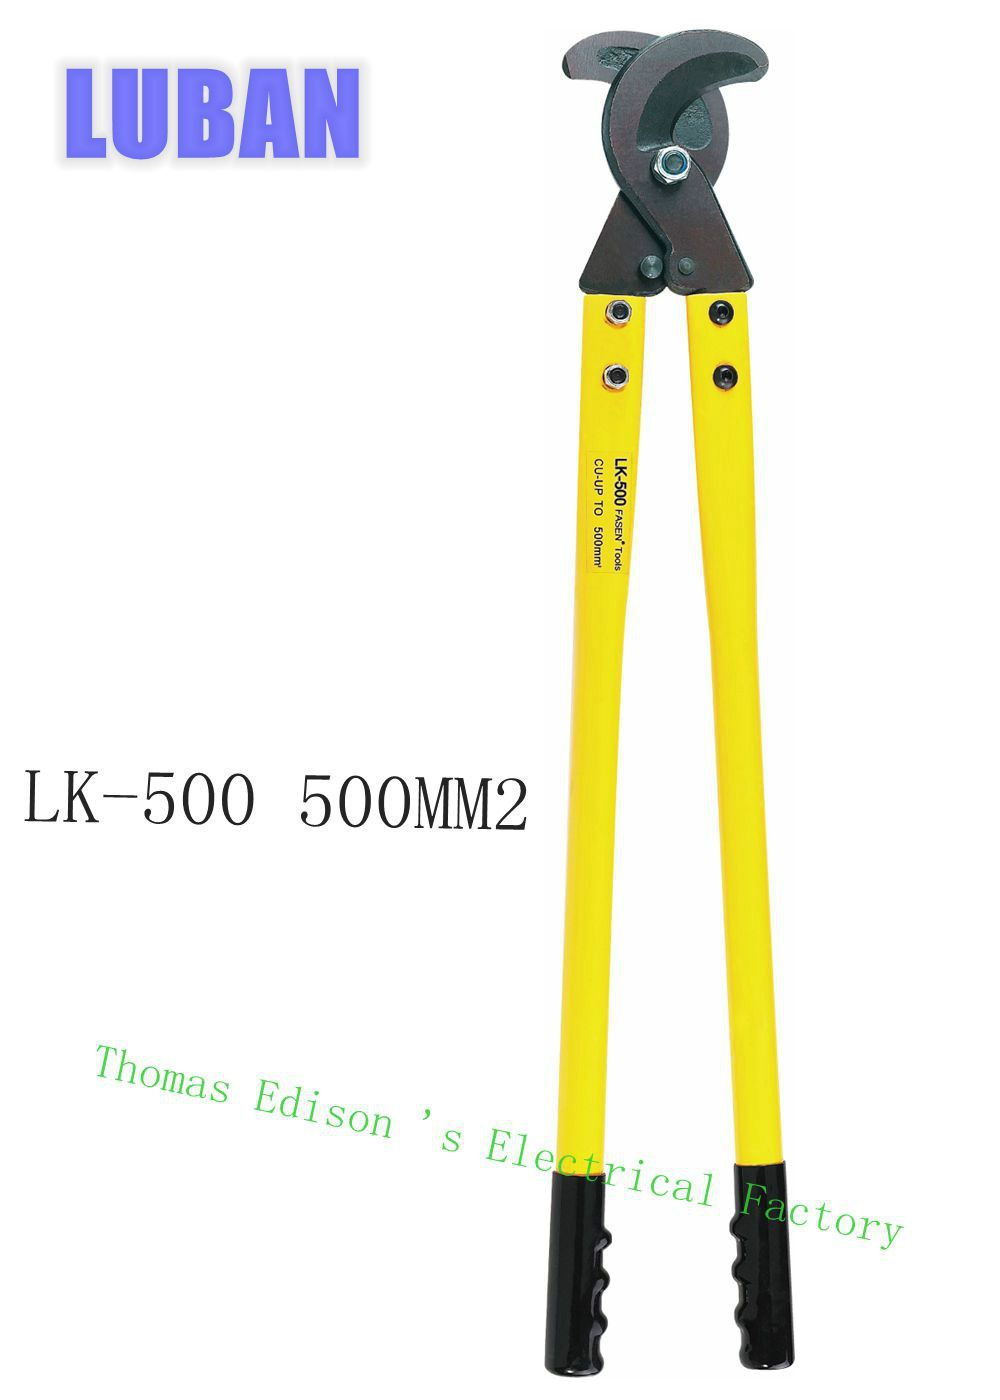 LK-500 500mm2 Max cutting Hand Cable Cutter Plier, Wire Cutter Plier, Hand Tool, not for cutting steel or steel wire<br>